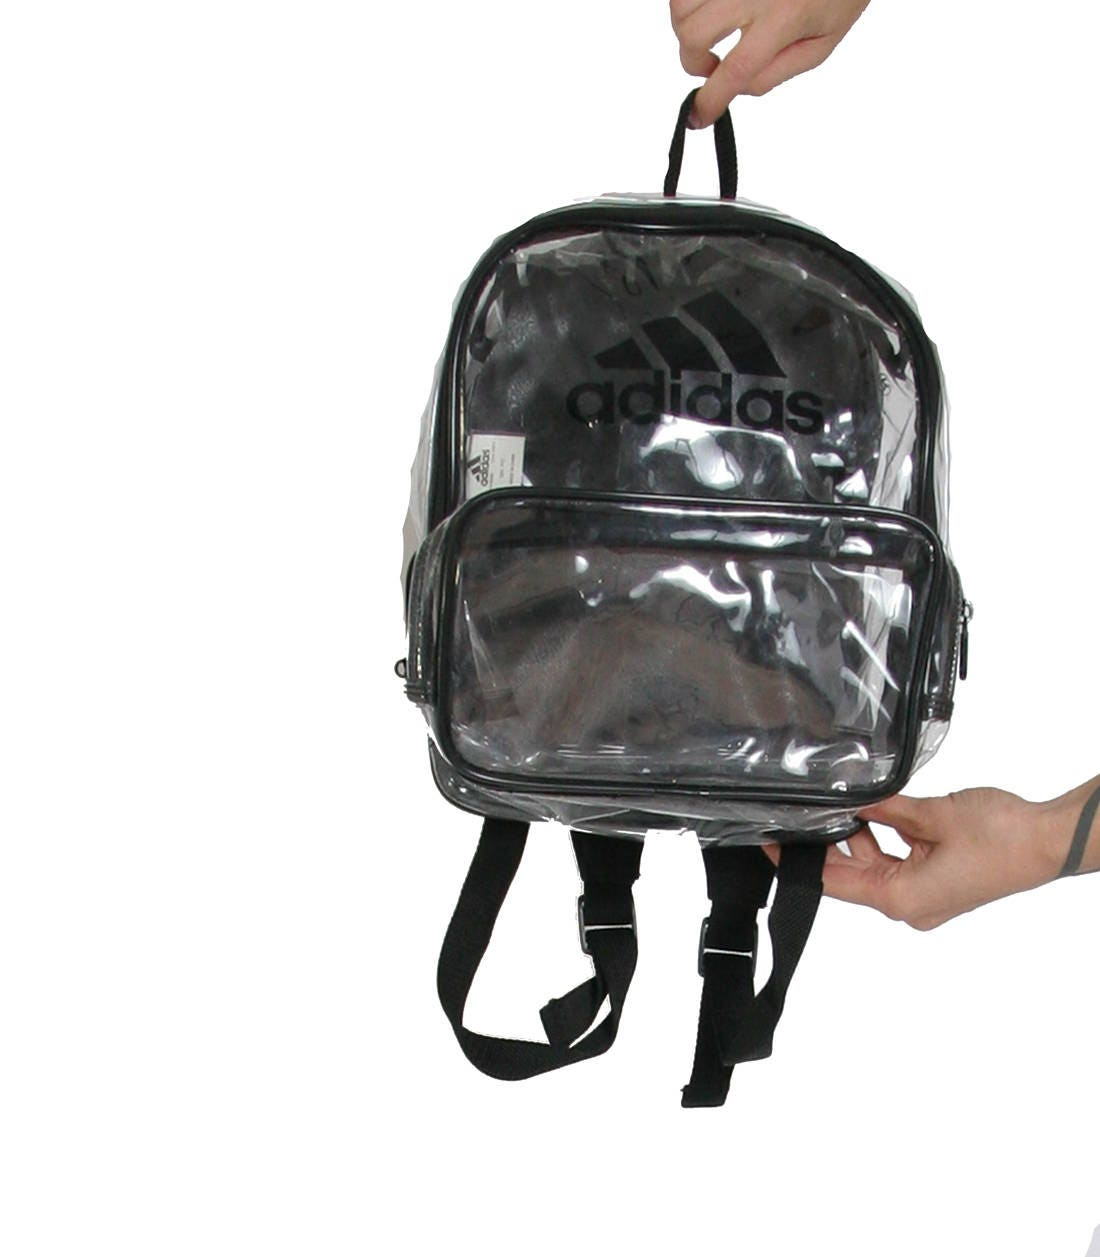 Clear Plastic ADIDAS Backpack - Sporty 90s Y2k - Plastic Mini Backpack - Adidas  bag - af1be6936c003